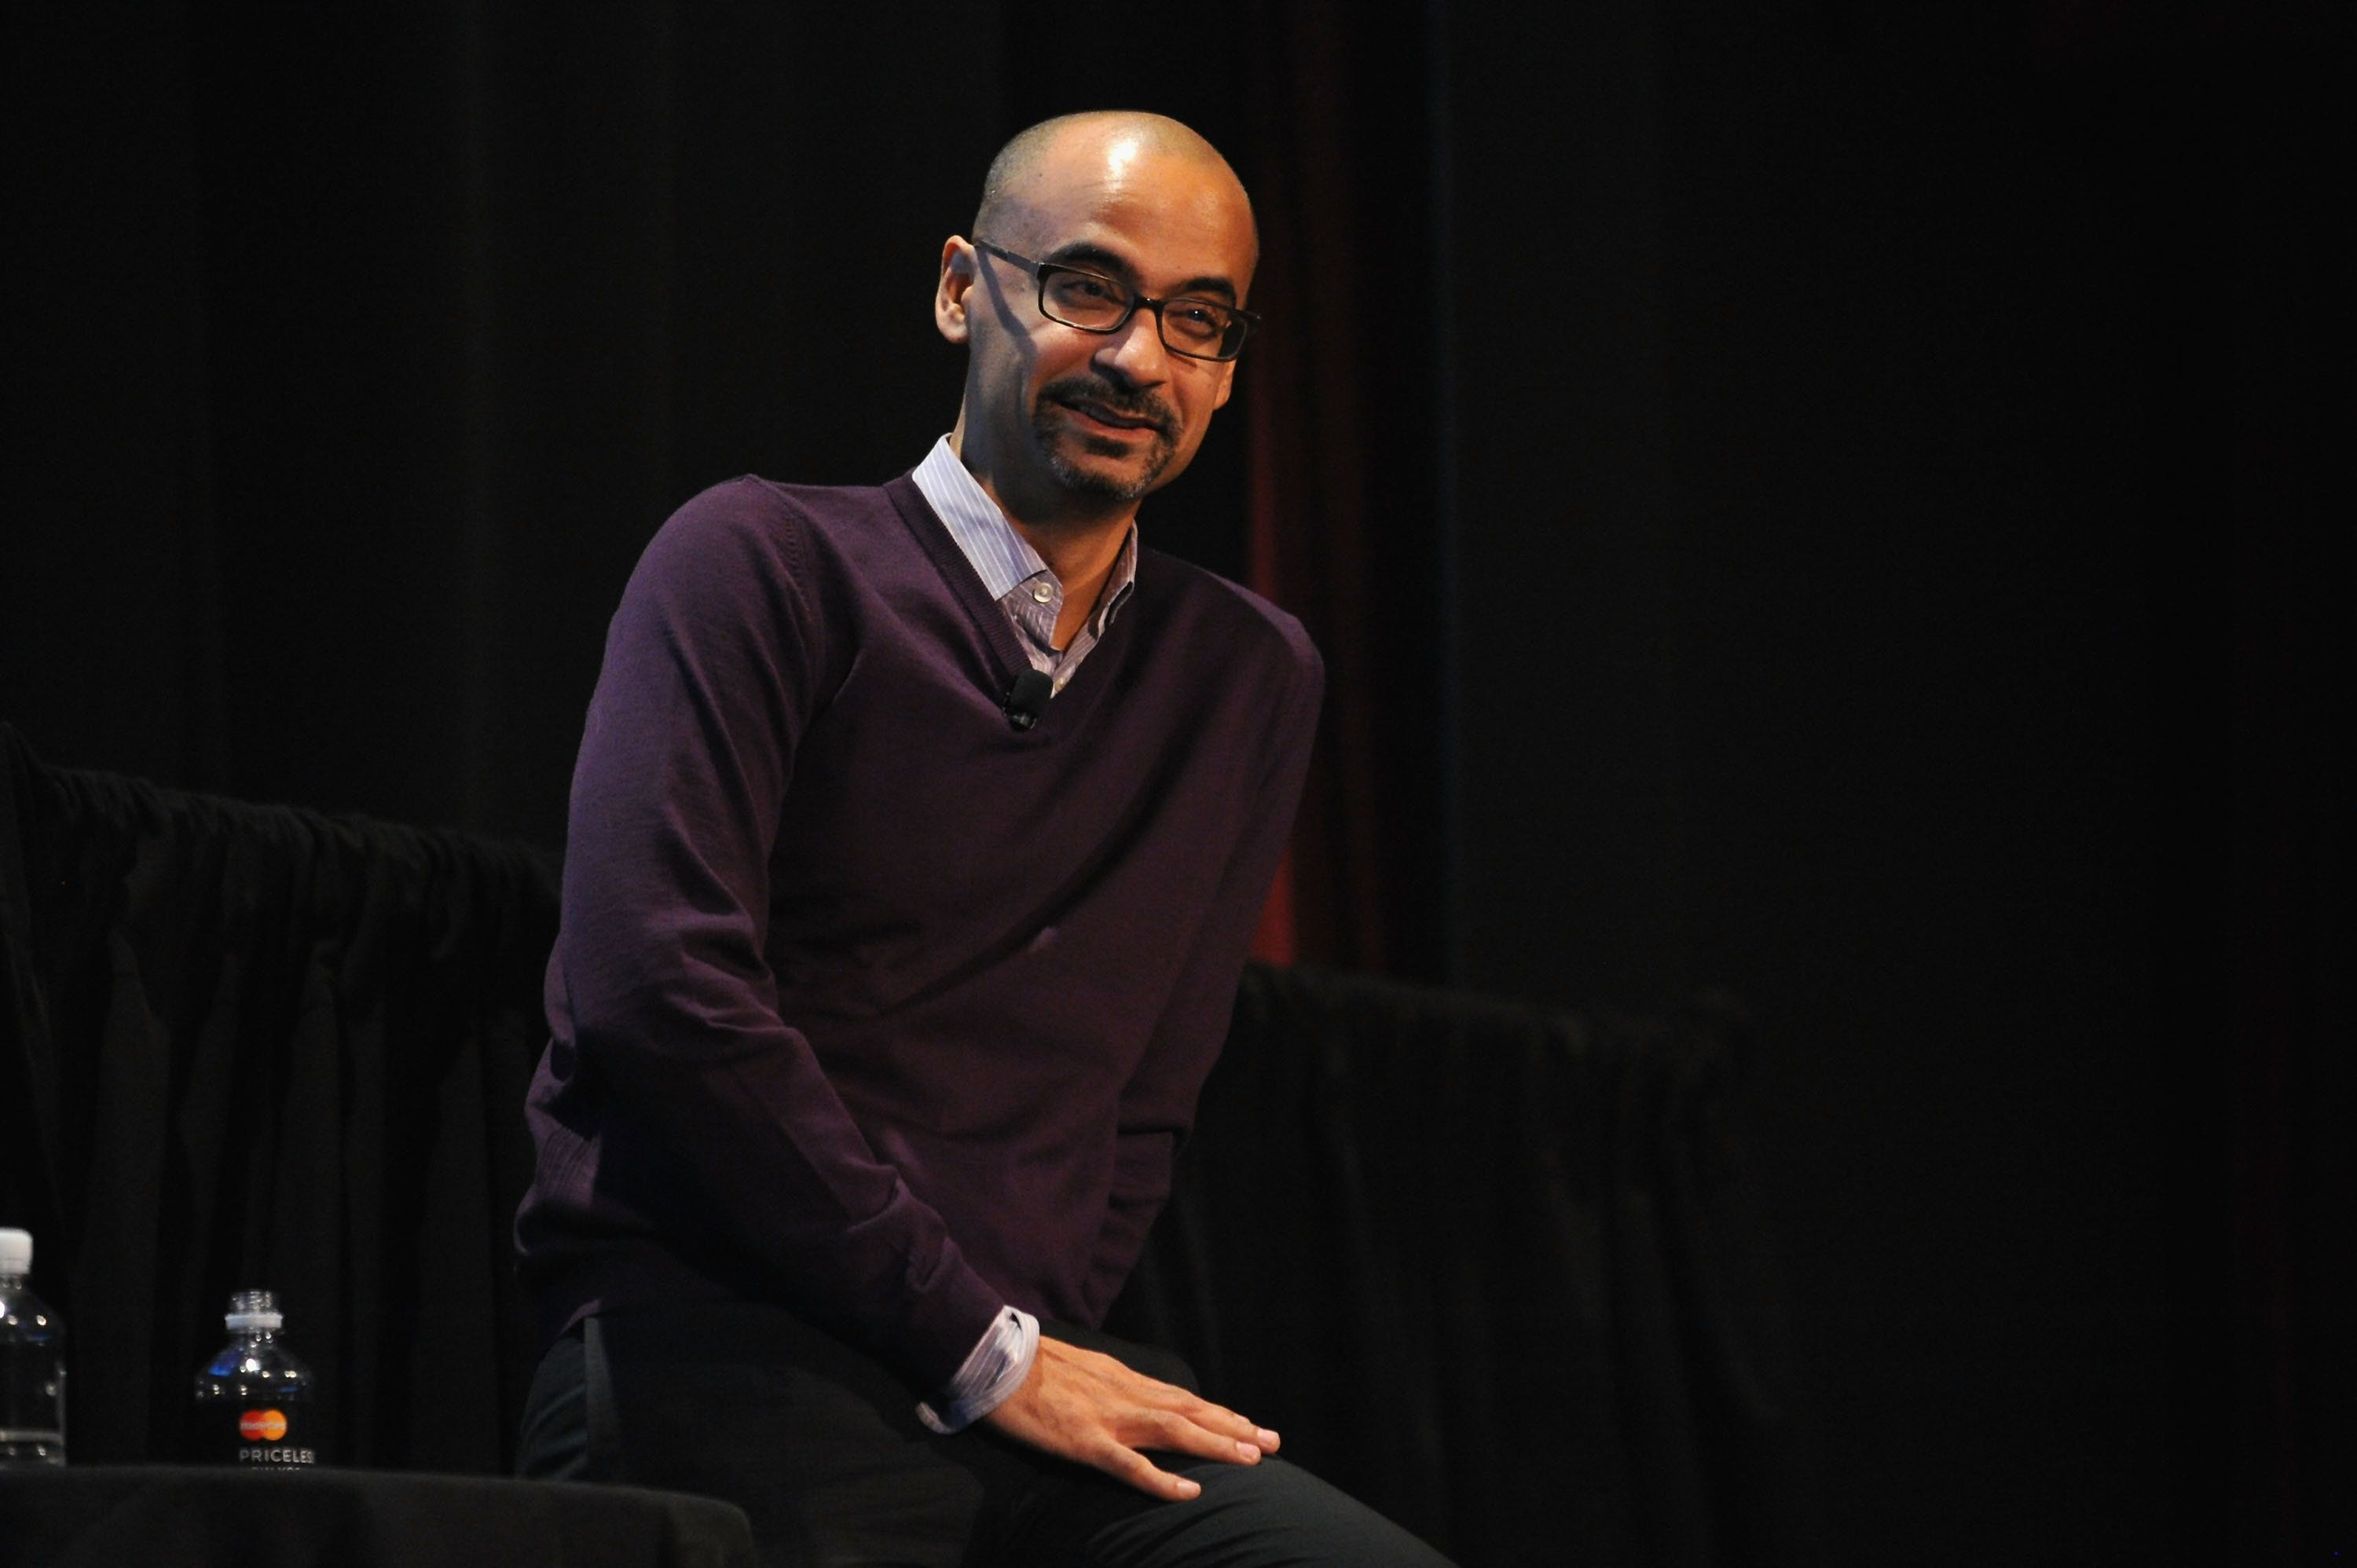 NEW YORK, NY - OCTOBER 10:  Writer Junot Diaz attends the Jersey Boys: David Chase, Junot Diaz, And Sam Lipsyte Moderated By David Remnick during The New Yorker Festival 2014 on October 10, 2014 in New York City.  (Photo by Andrew Toth/Getty Images for The New Yorker Festival)